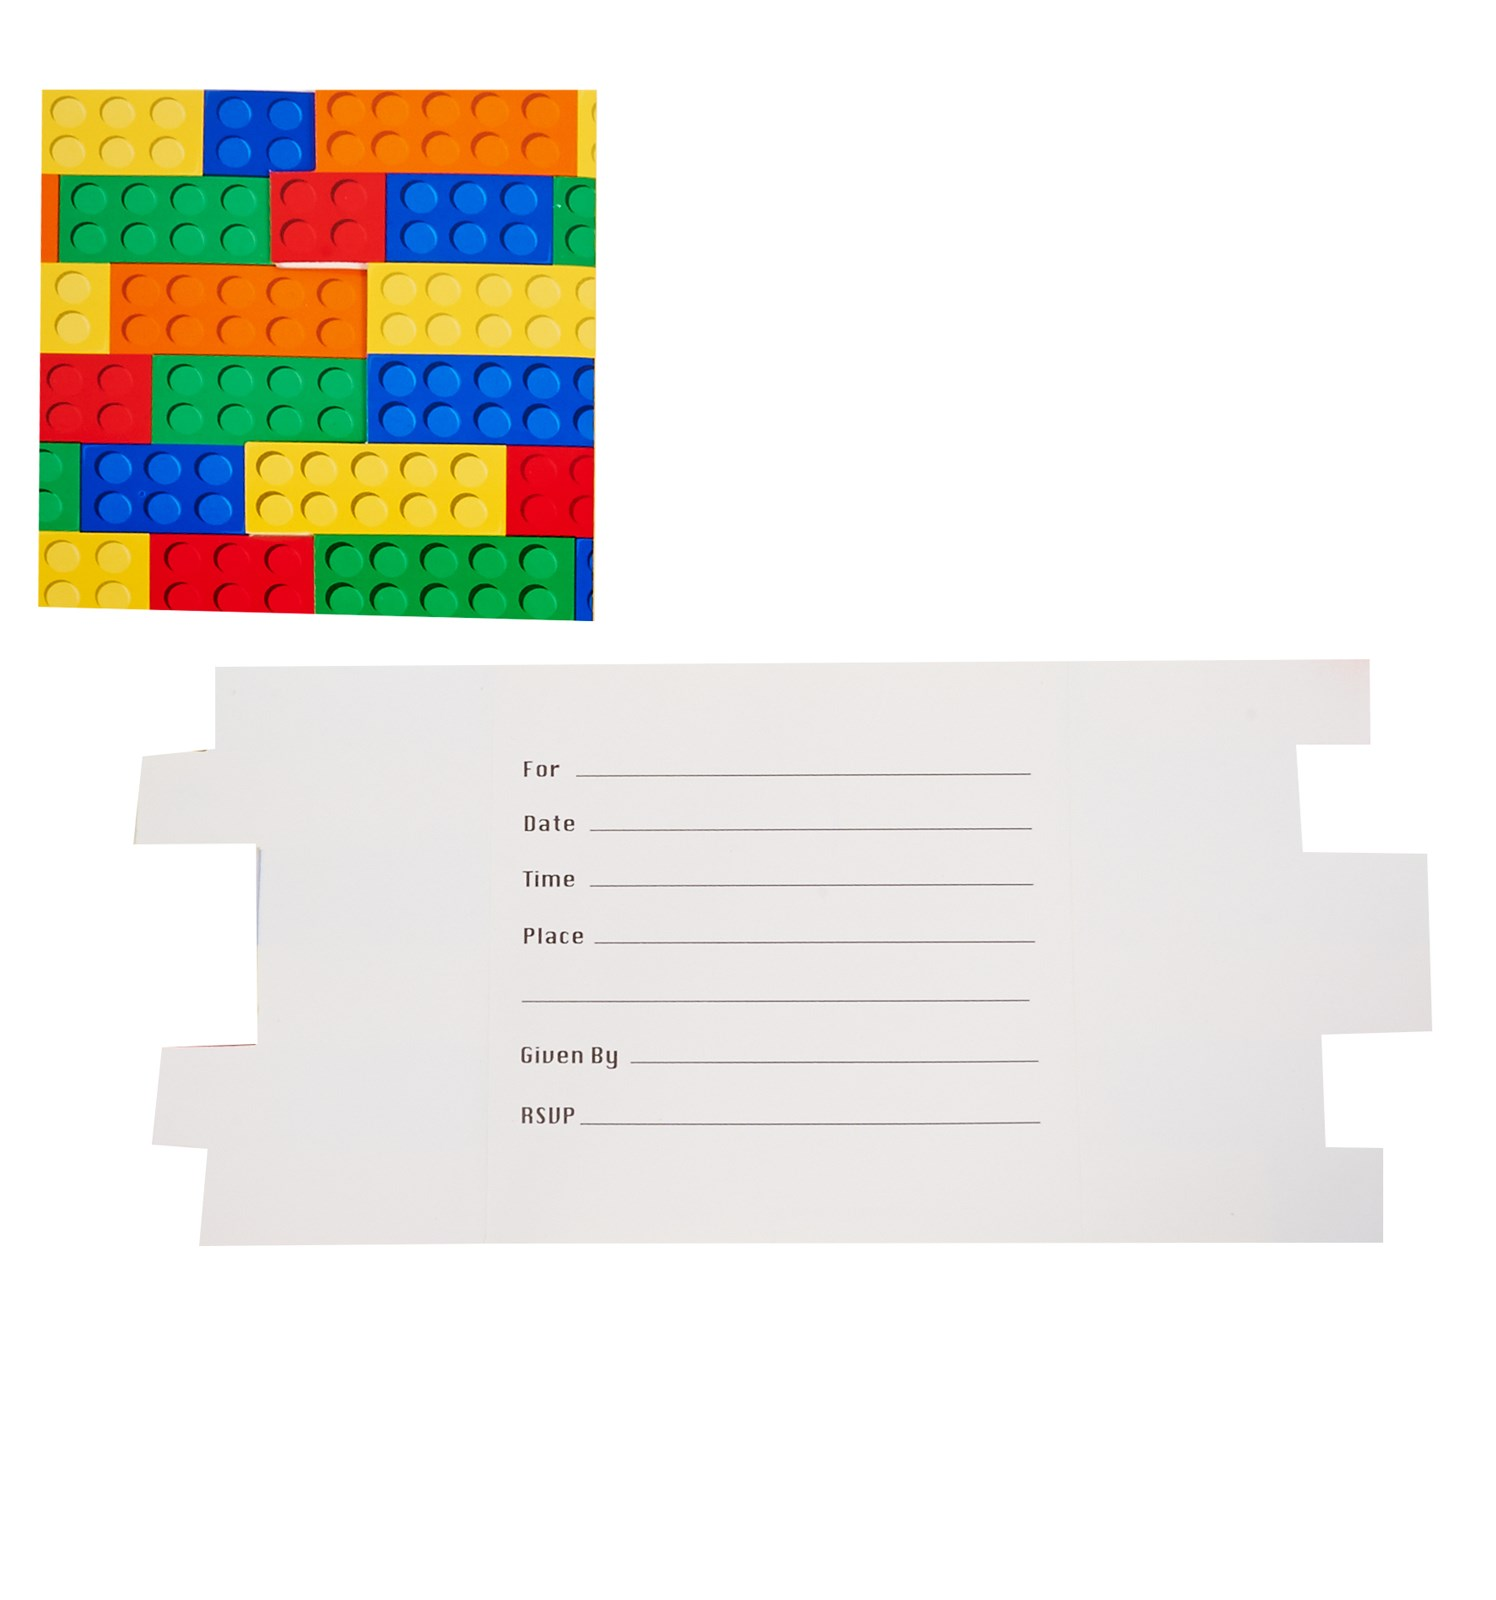 Building block party invitations birthdayexpress alt image 1 building block party invitations monicamarmolfo Choice Image